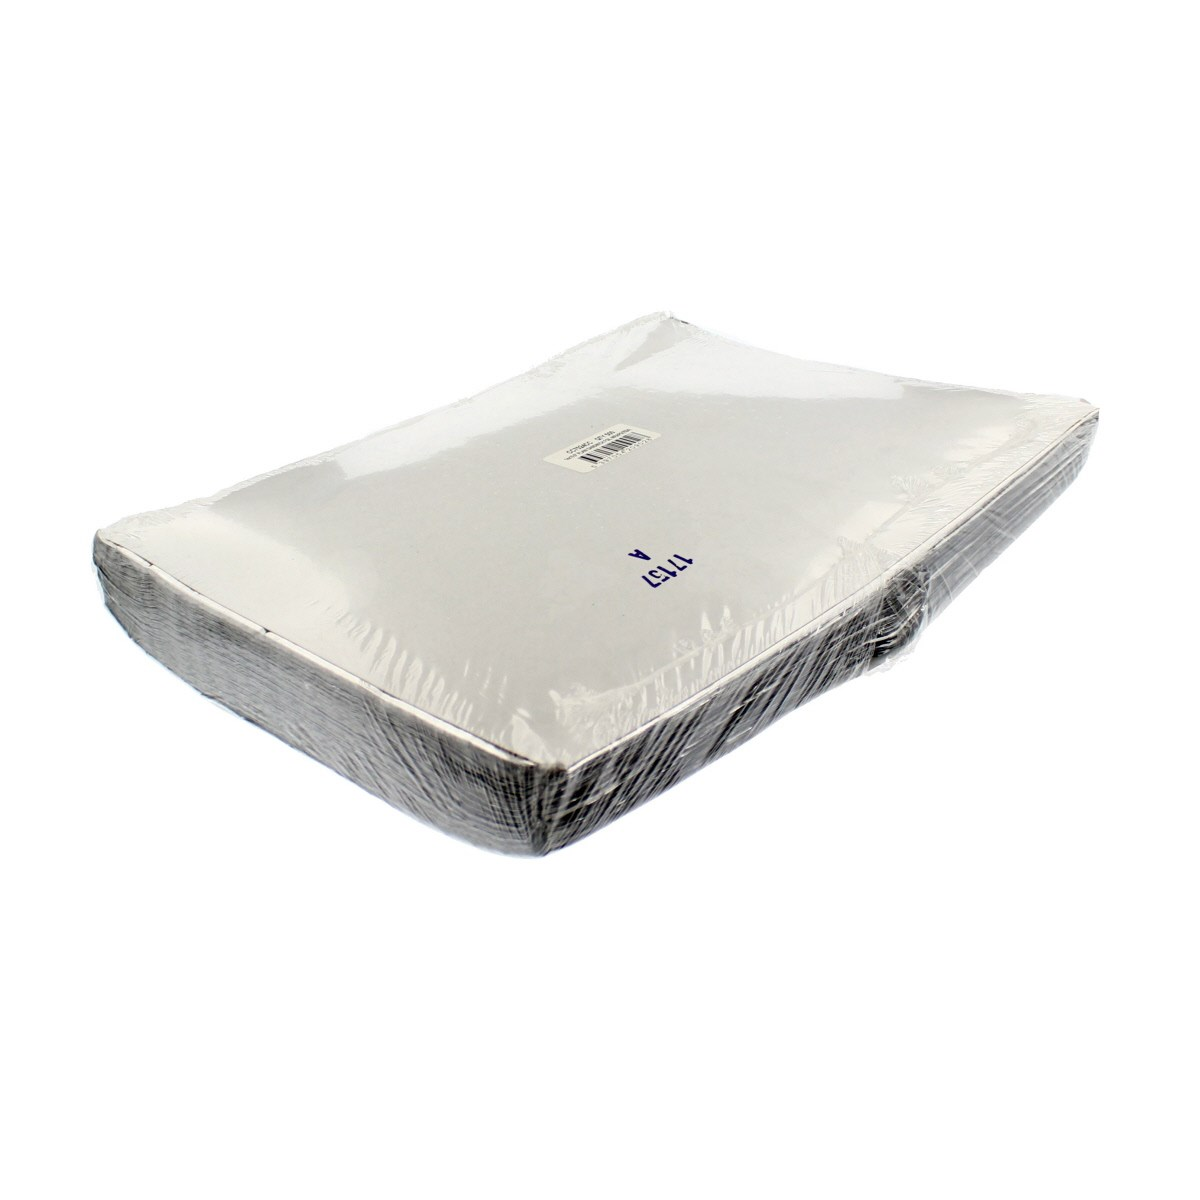 Insulated Tin Foil Sandwich Wrap Sheets 14 X 10 5 Inch